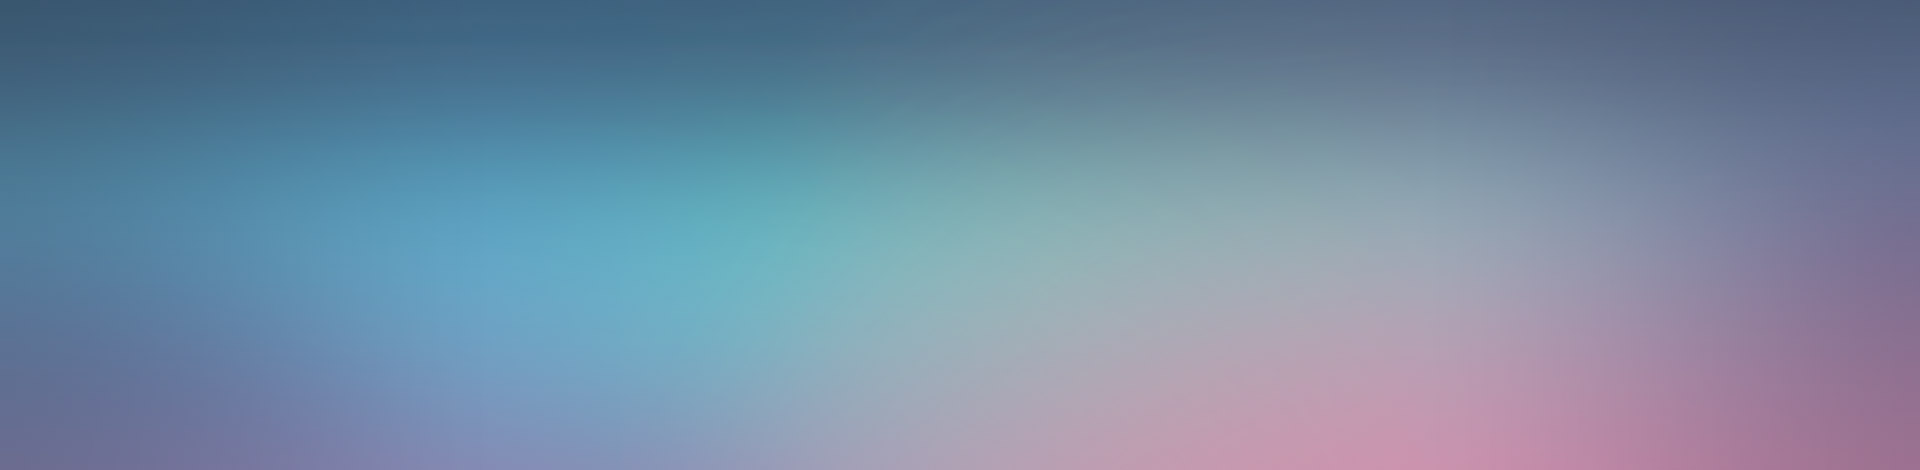 slider_background_5